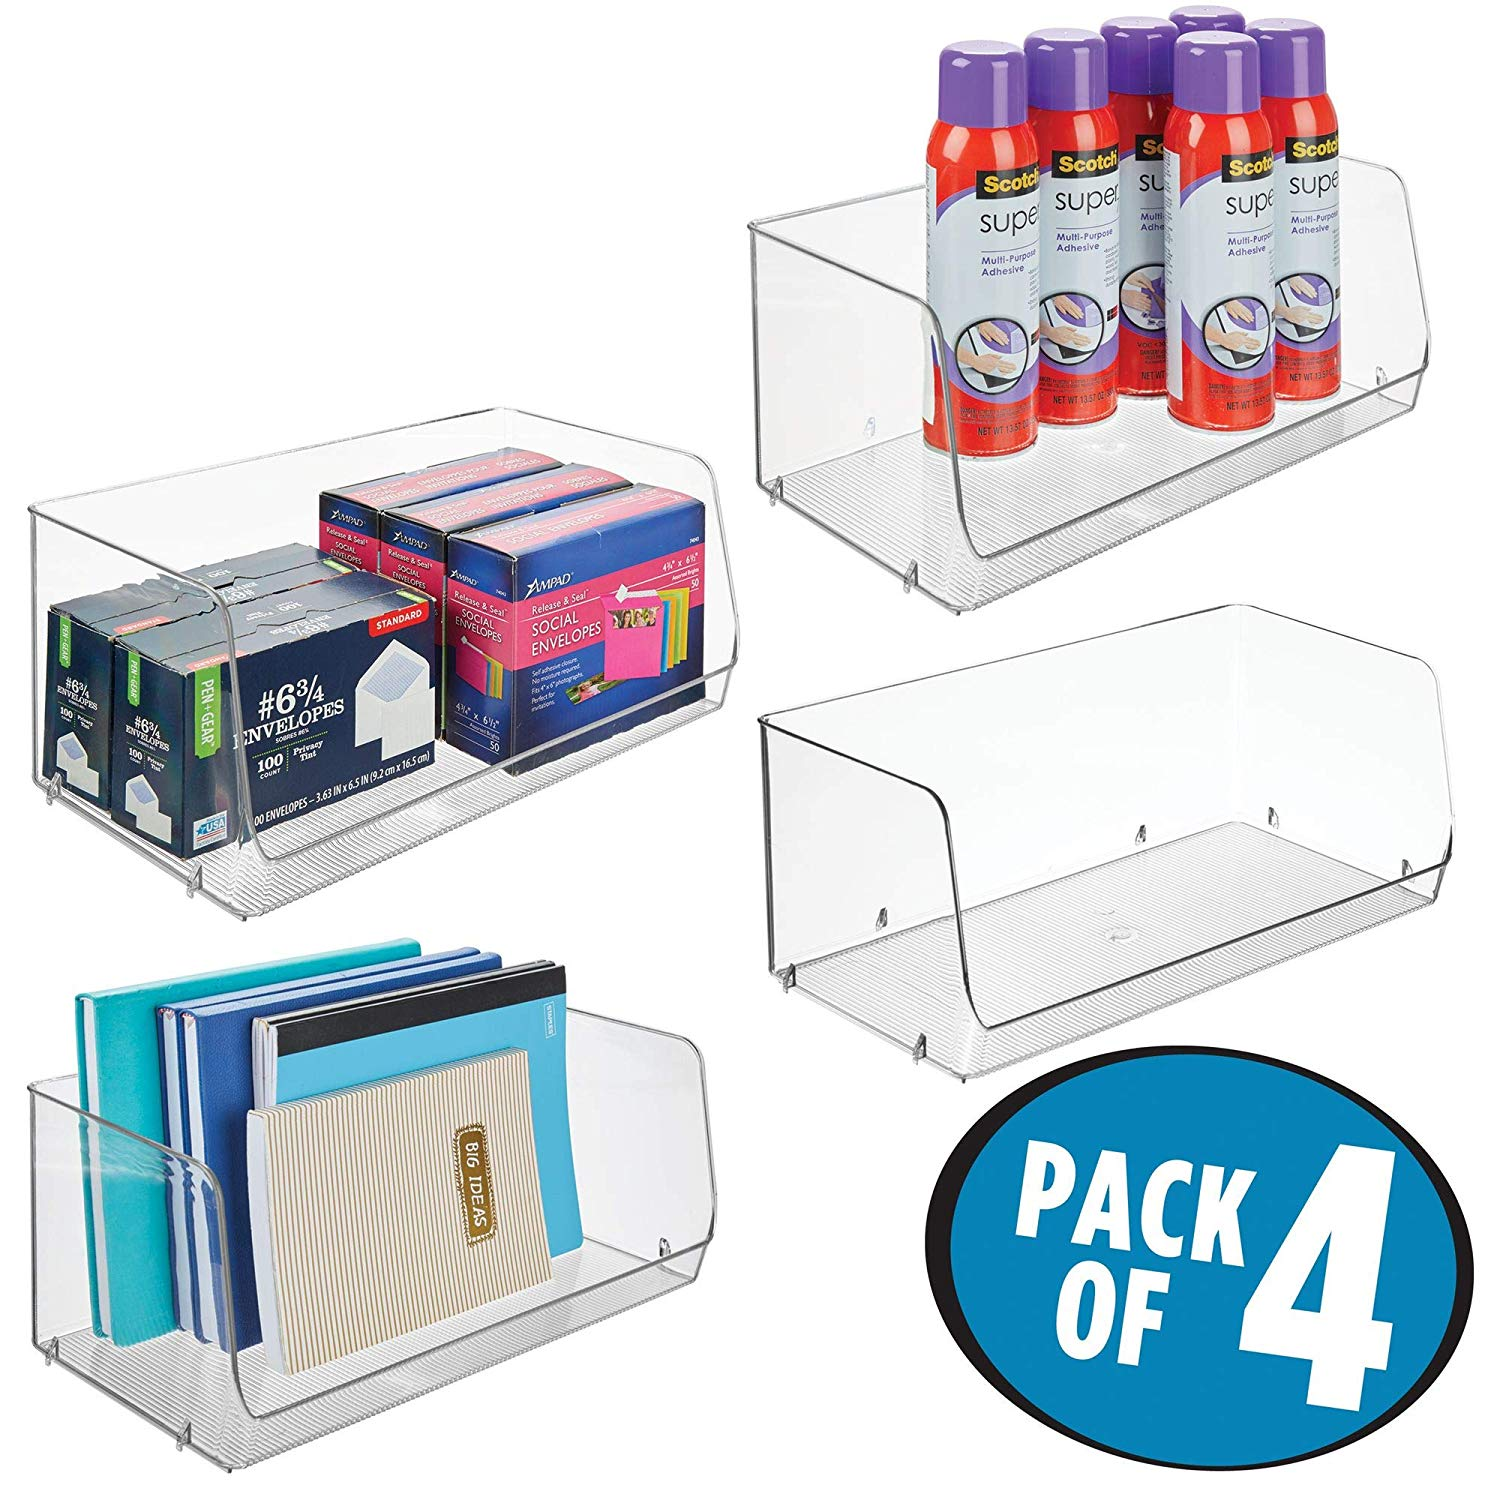 """mDesign Stackable Plastic Storage Organizer Bin Basket for Desk, Book Shelf, Filing Cabinet - Container for Office Supplies, Sticky Notes, Pens, Pencils, 15"""" Wide, 4 Pack, Clear"""